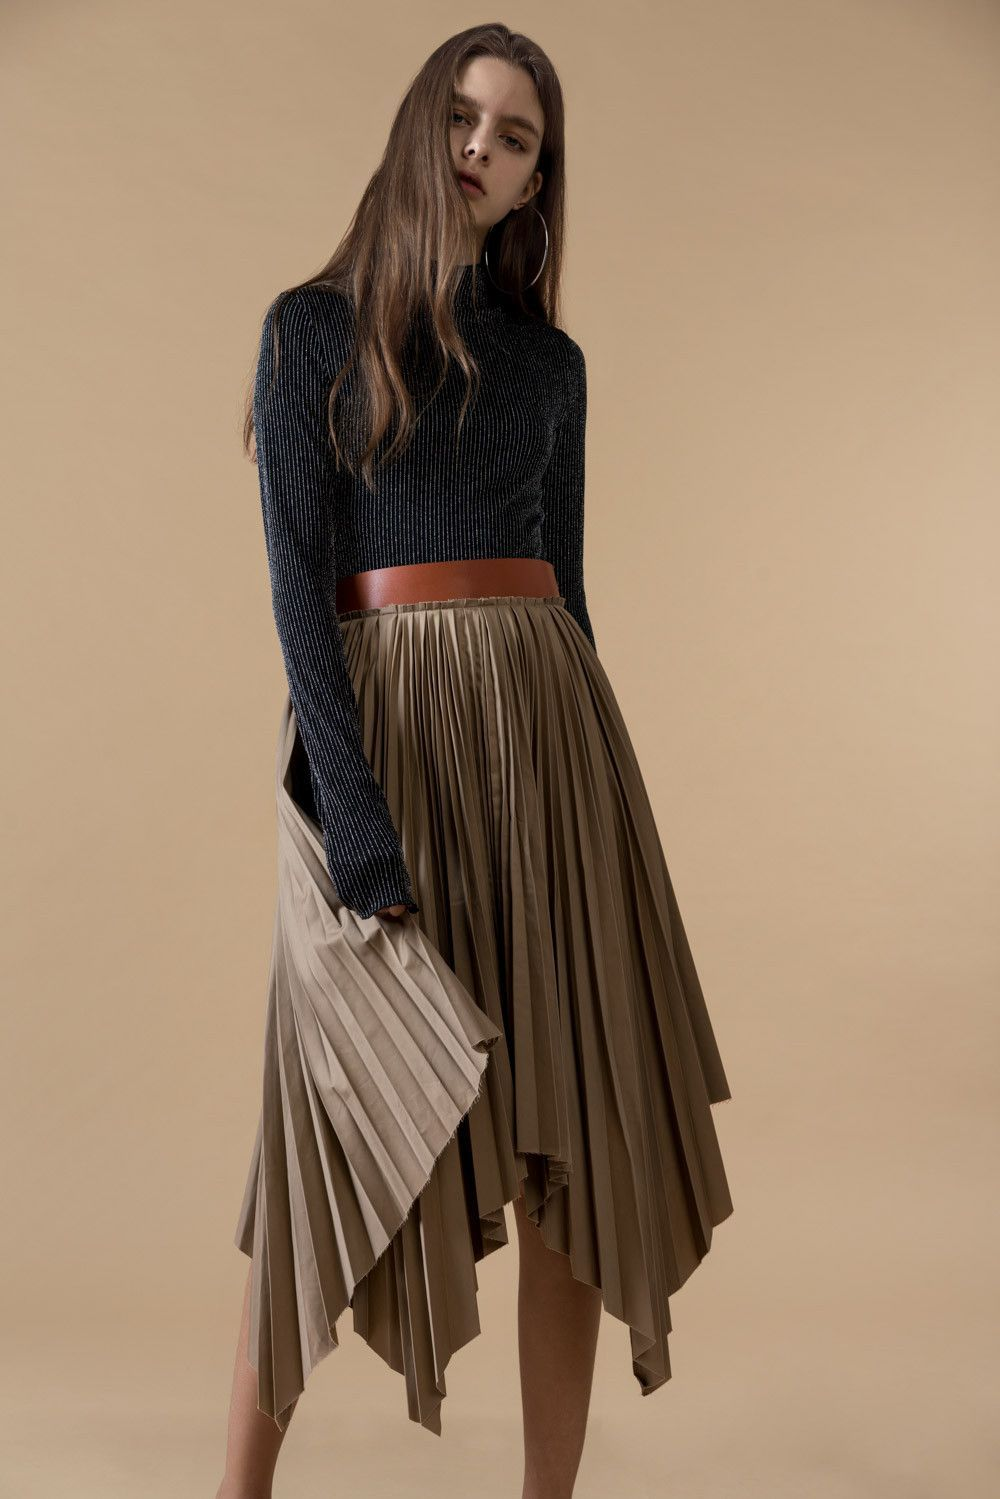 dddcadc7ca Genuine People Leather Belt Pleated Skirt | S K I R T S | Skirts ...